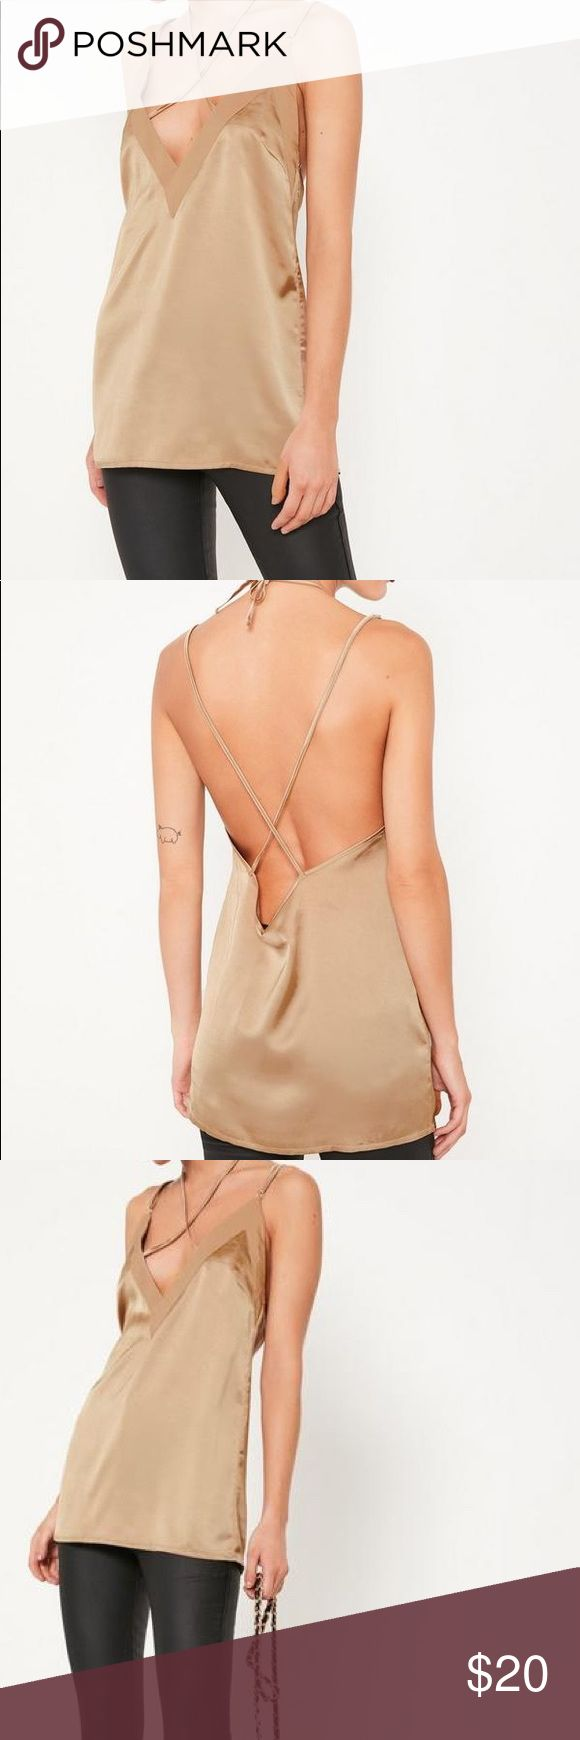 Nude Cami Top Misguided Nude Cami top. Cross neckline ties around your neck, cross cross low cut back. Size womens US 4. Missguided Tops Blouses